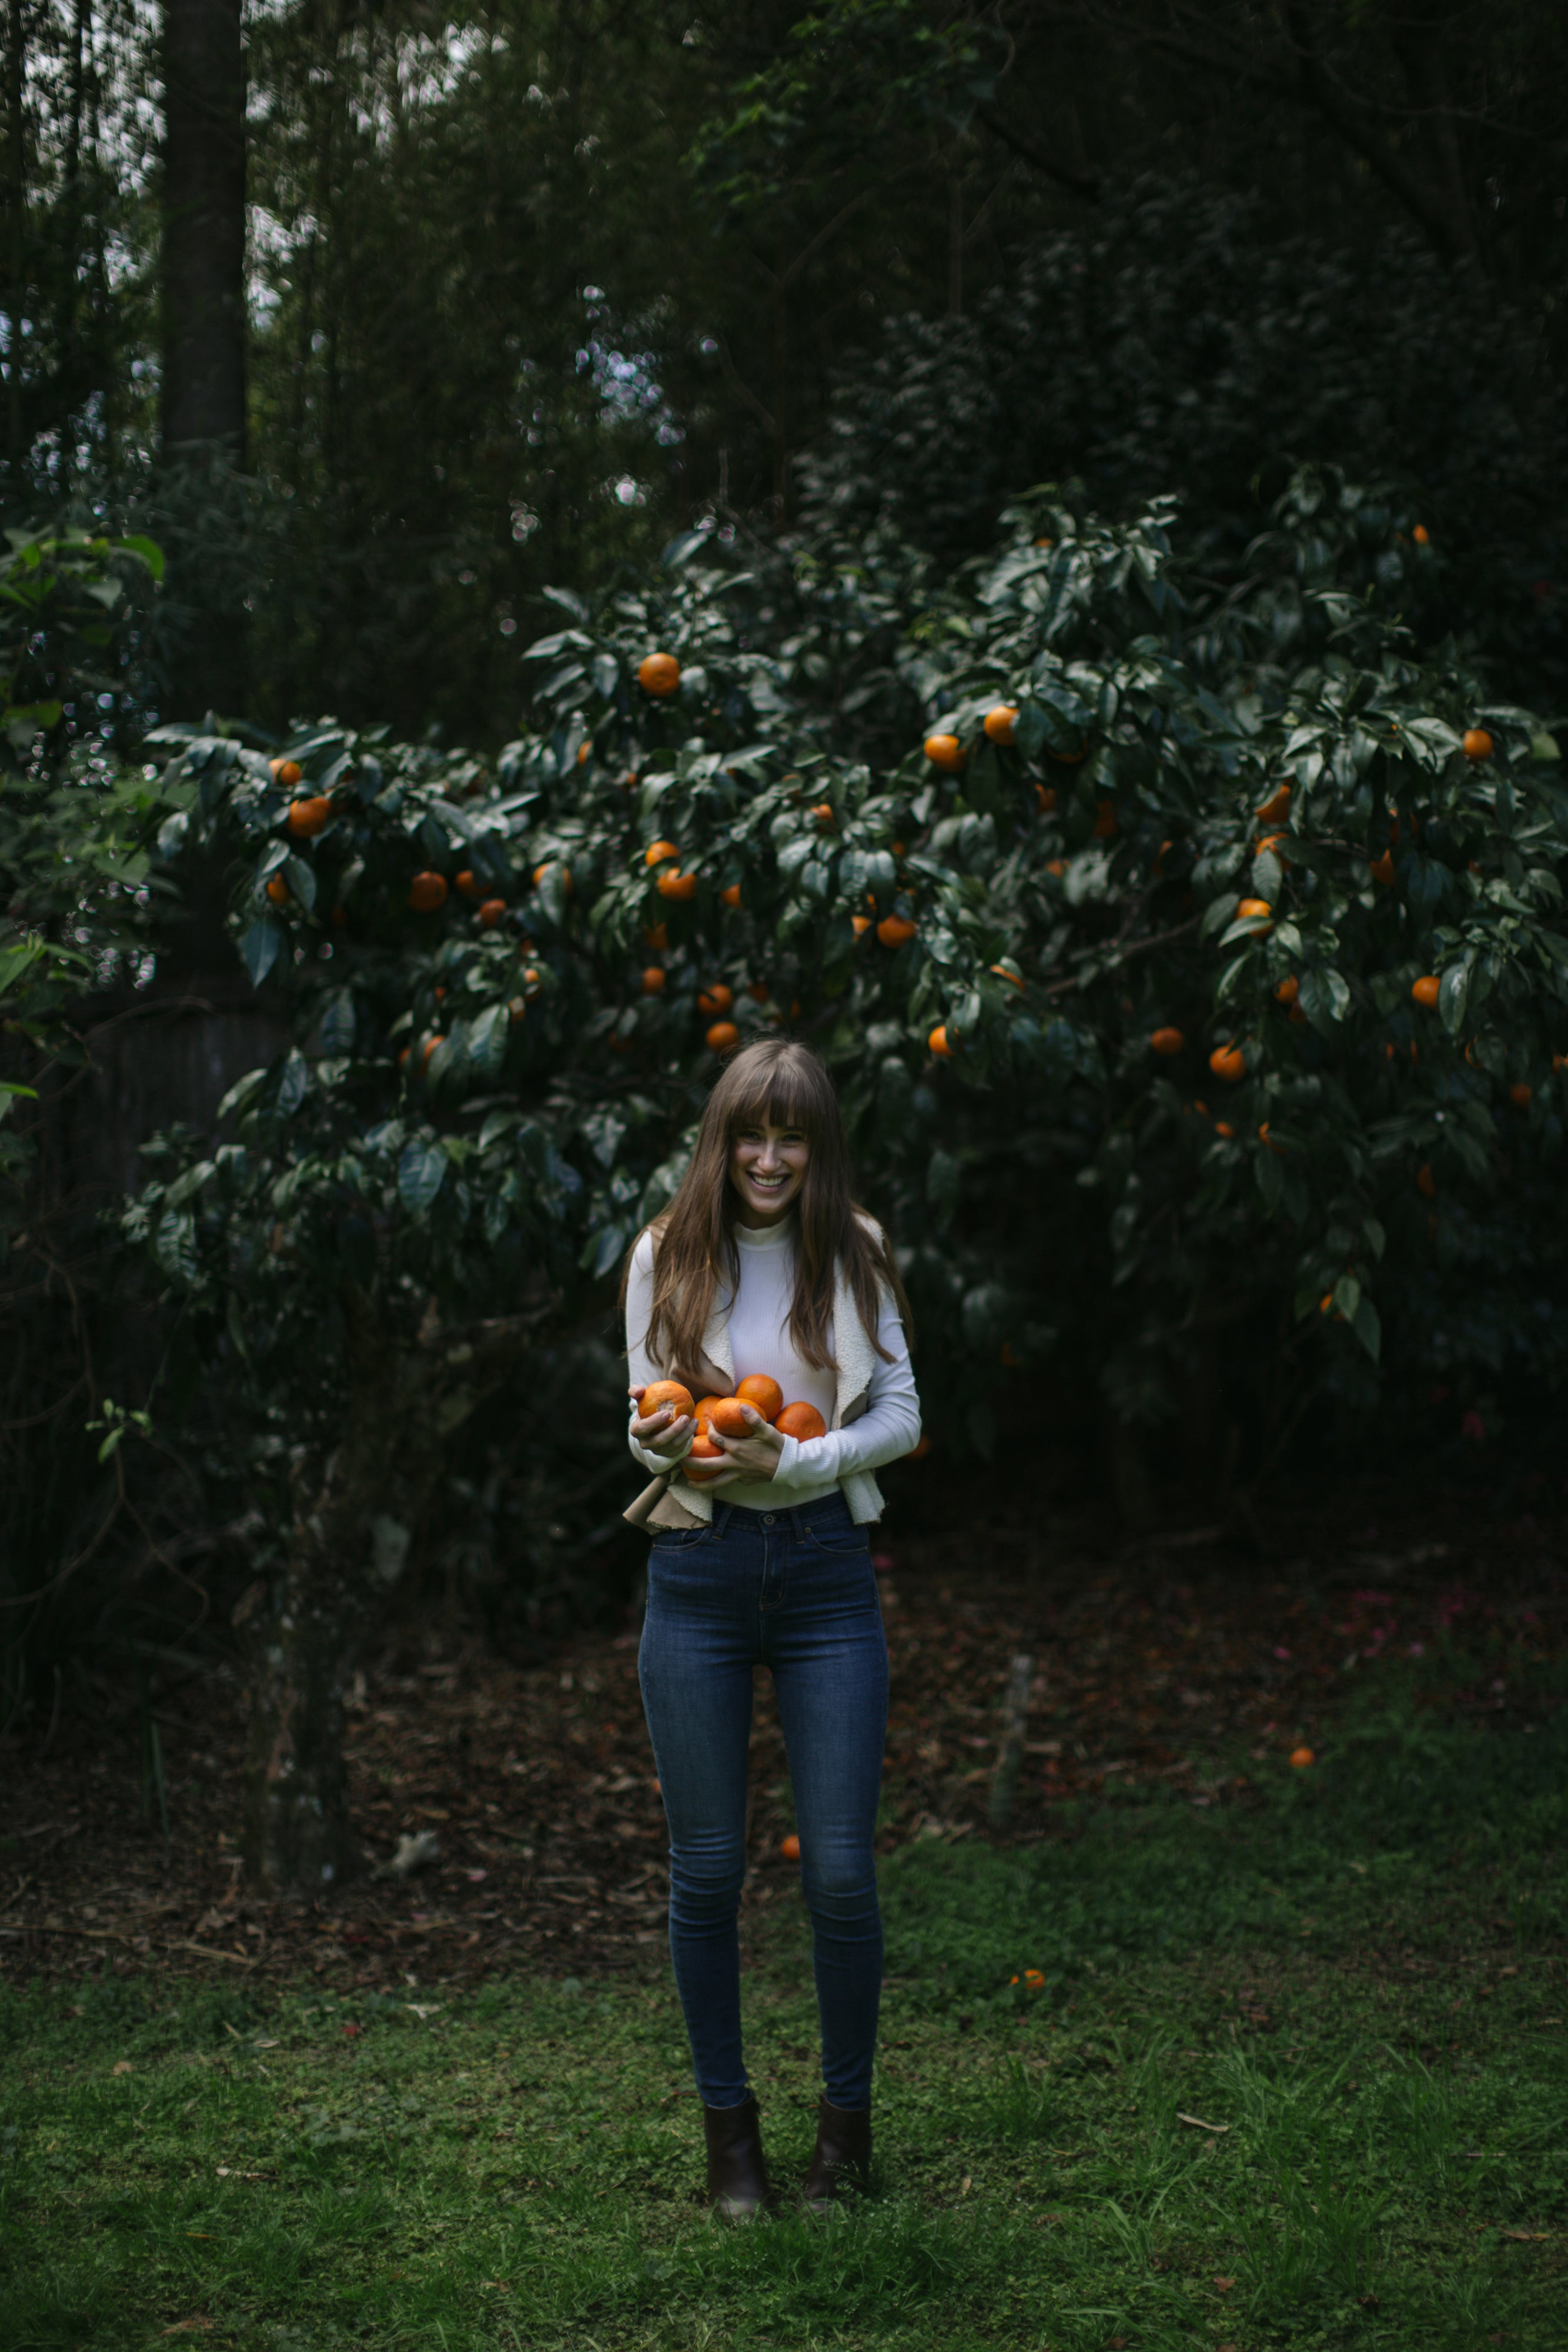 woman smiling picking oranges wearing outland denim jeans